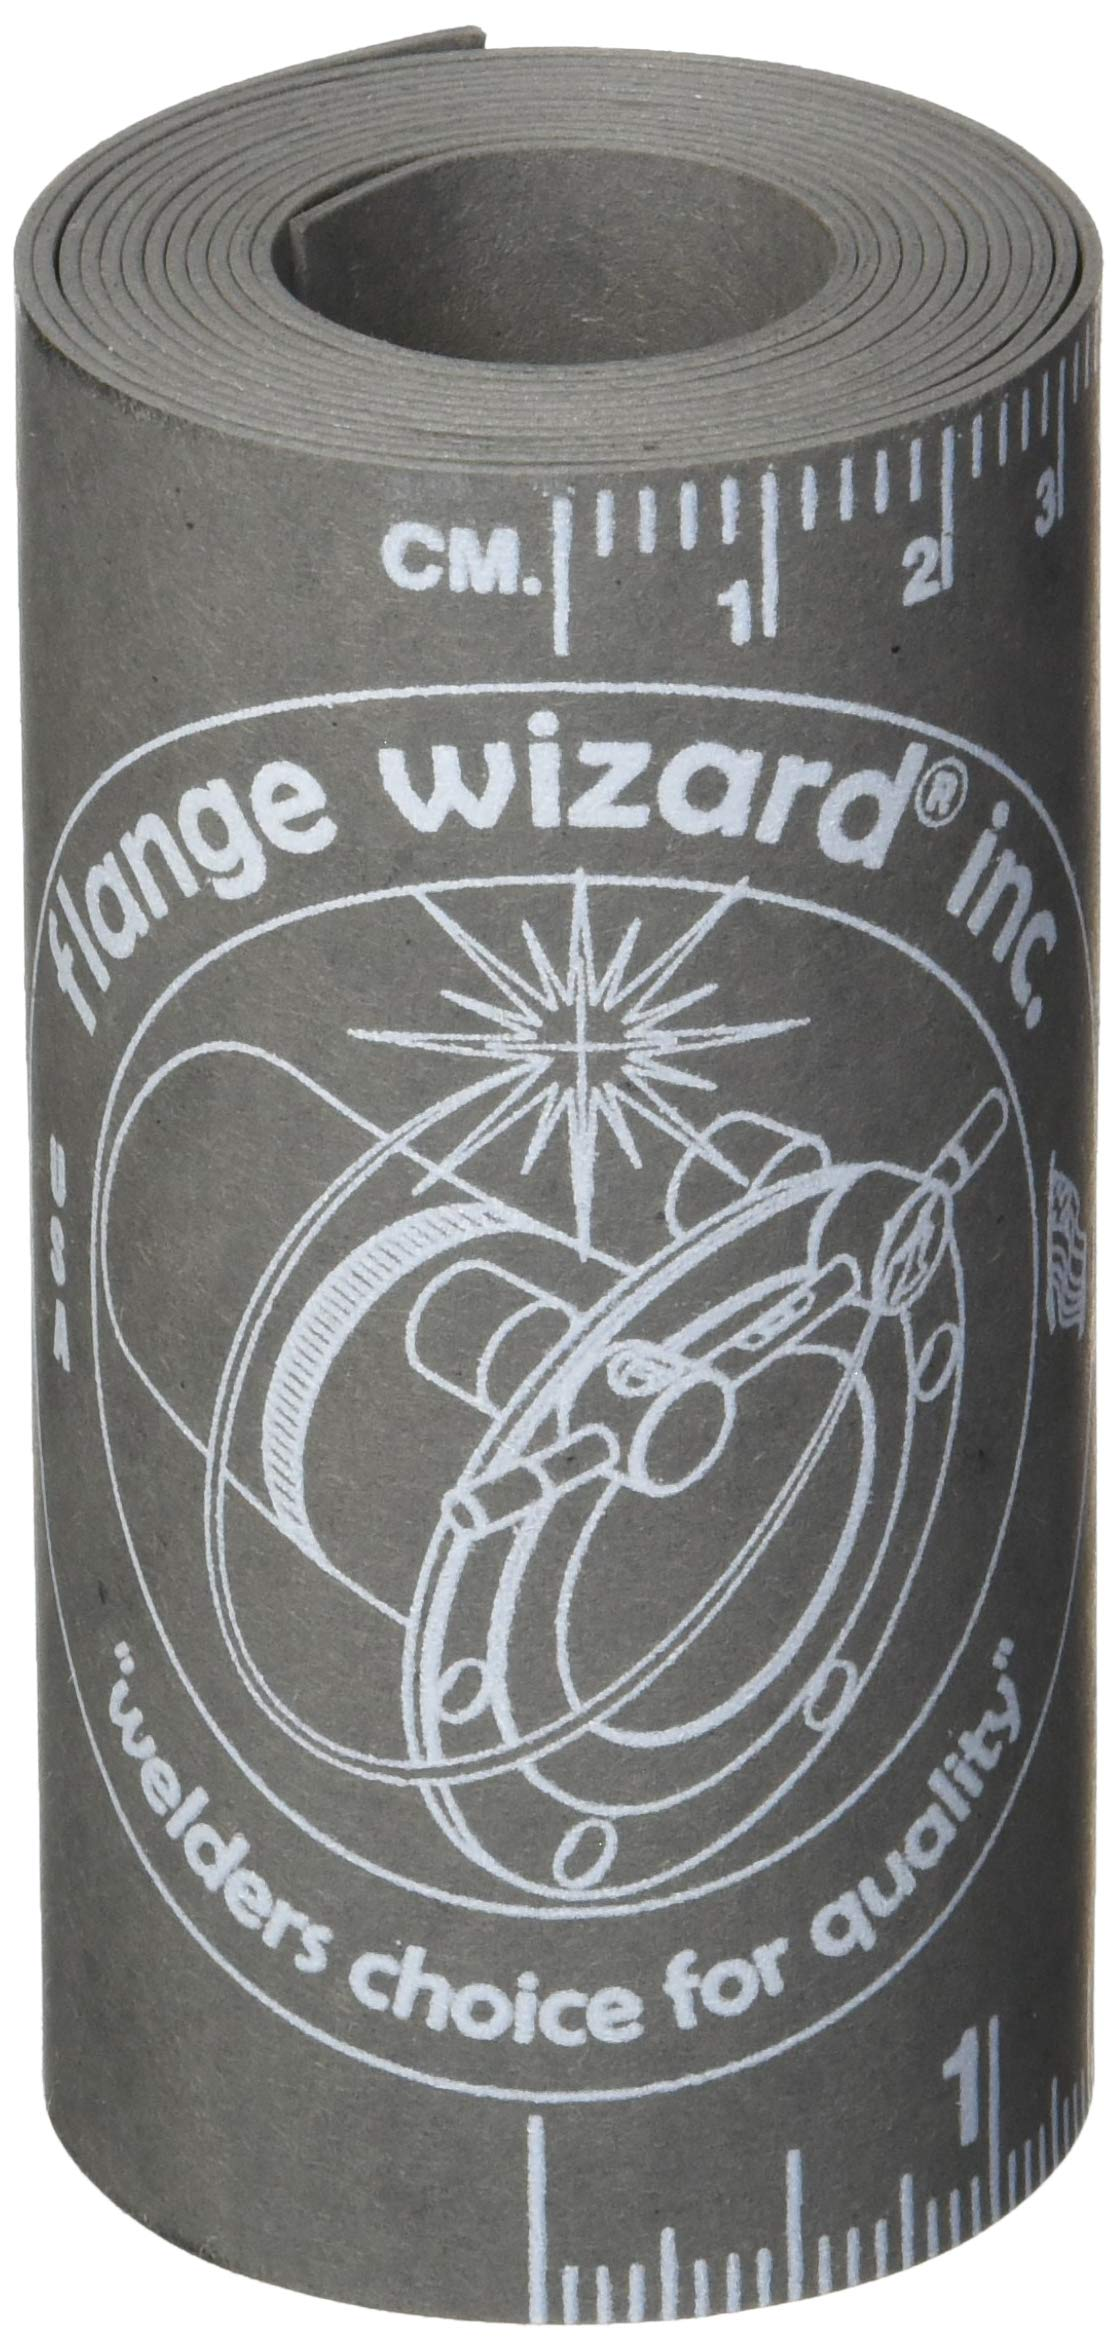 Flange Wizard 496-WW-17 WW-17 Wizard Wraps, 3 7/8'' x 60'', Heat Resistant, Medium by Flange Wizard